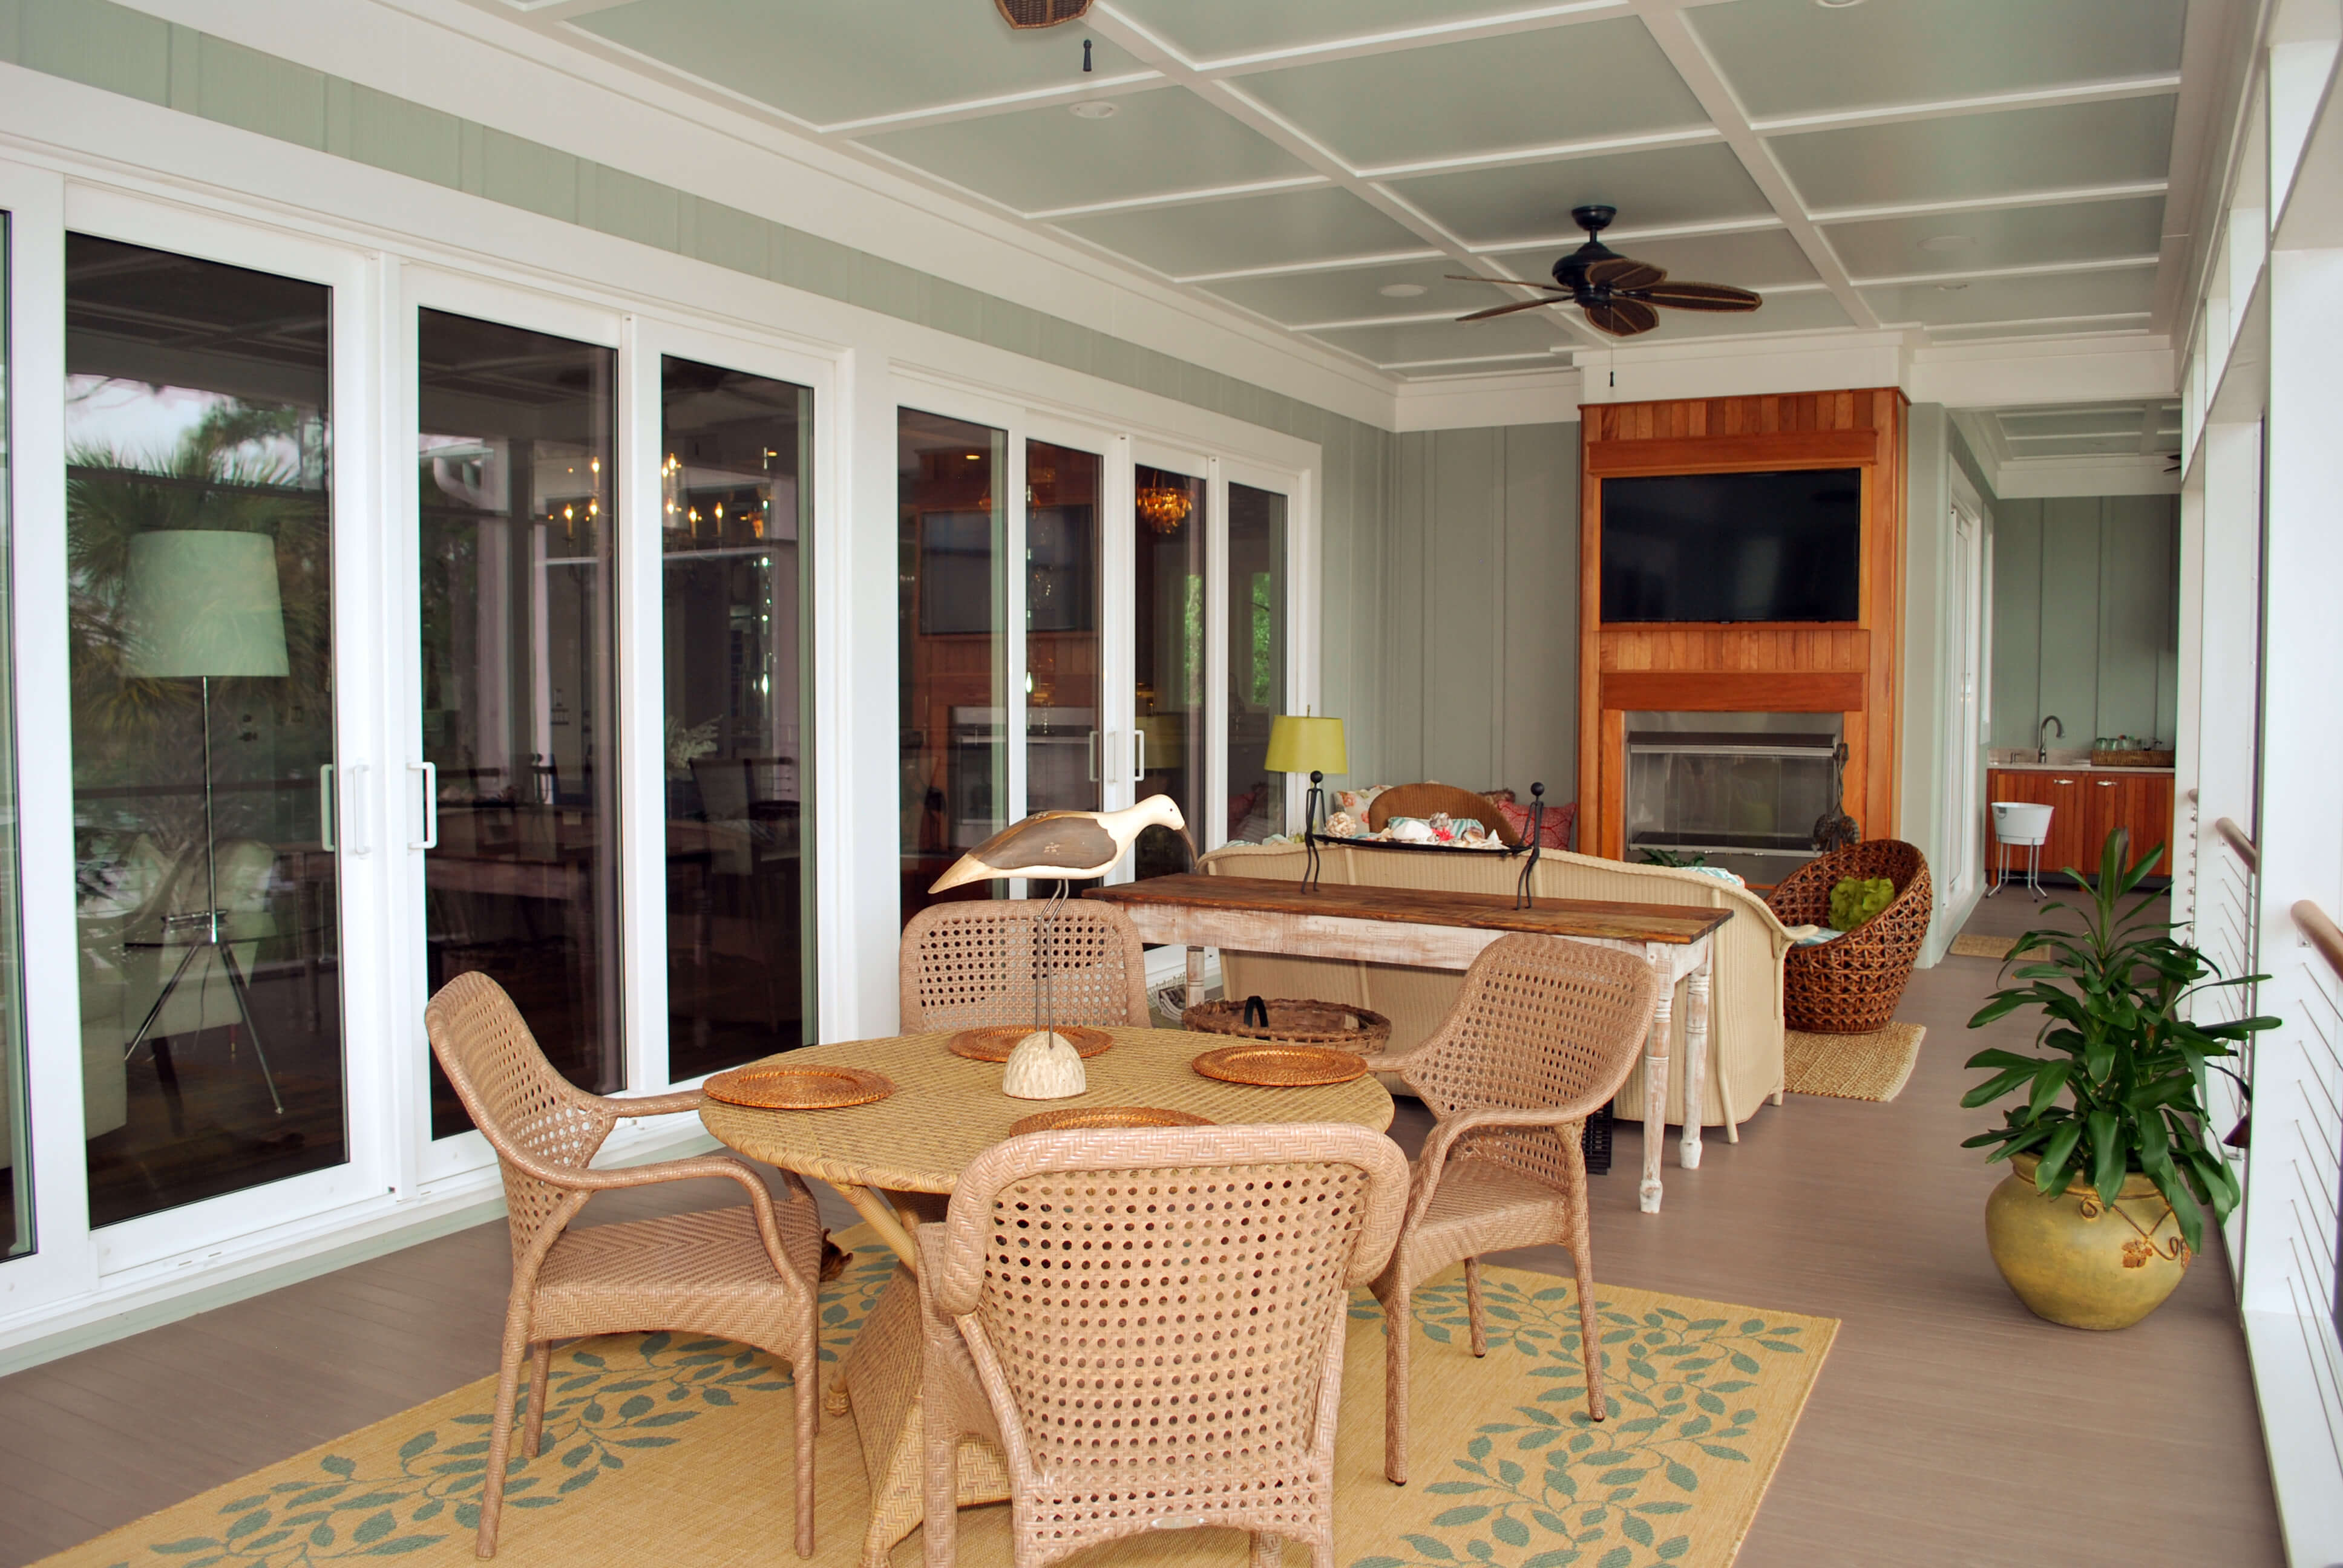 Screened in upper deck with dining area and built-in grill. Sliding glass doors across entire wall.